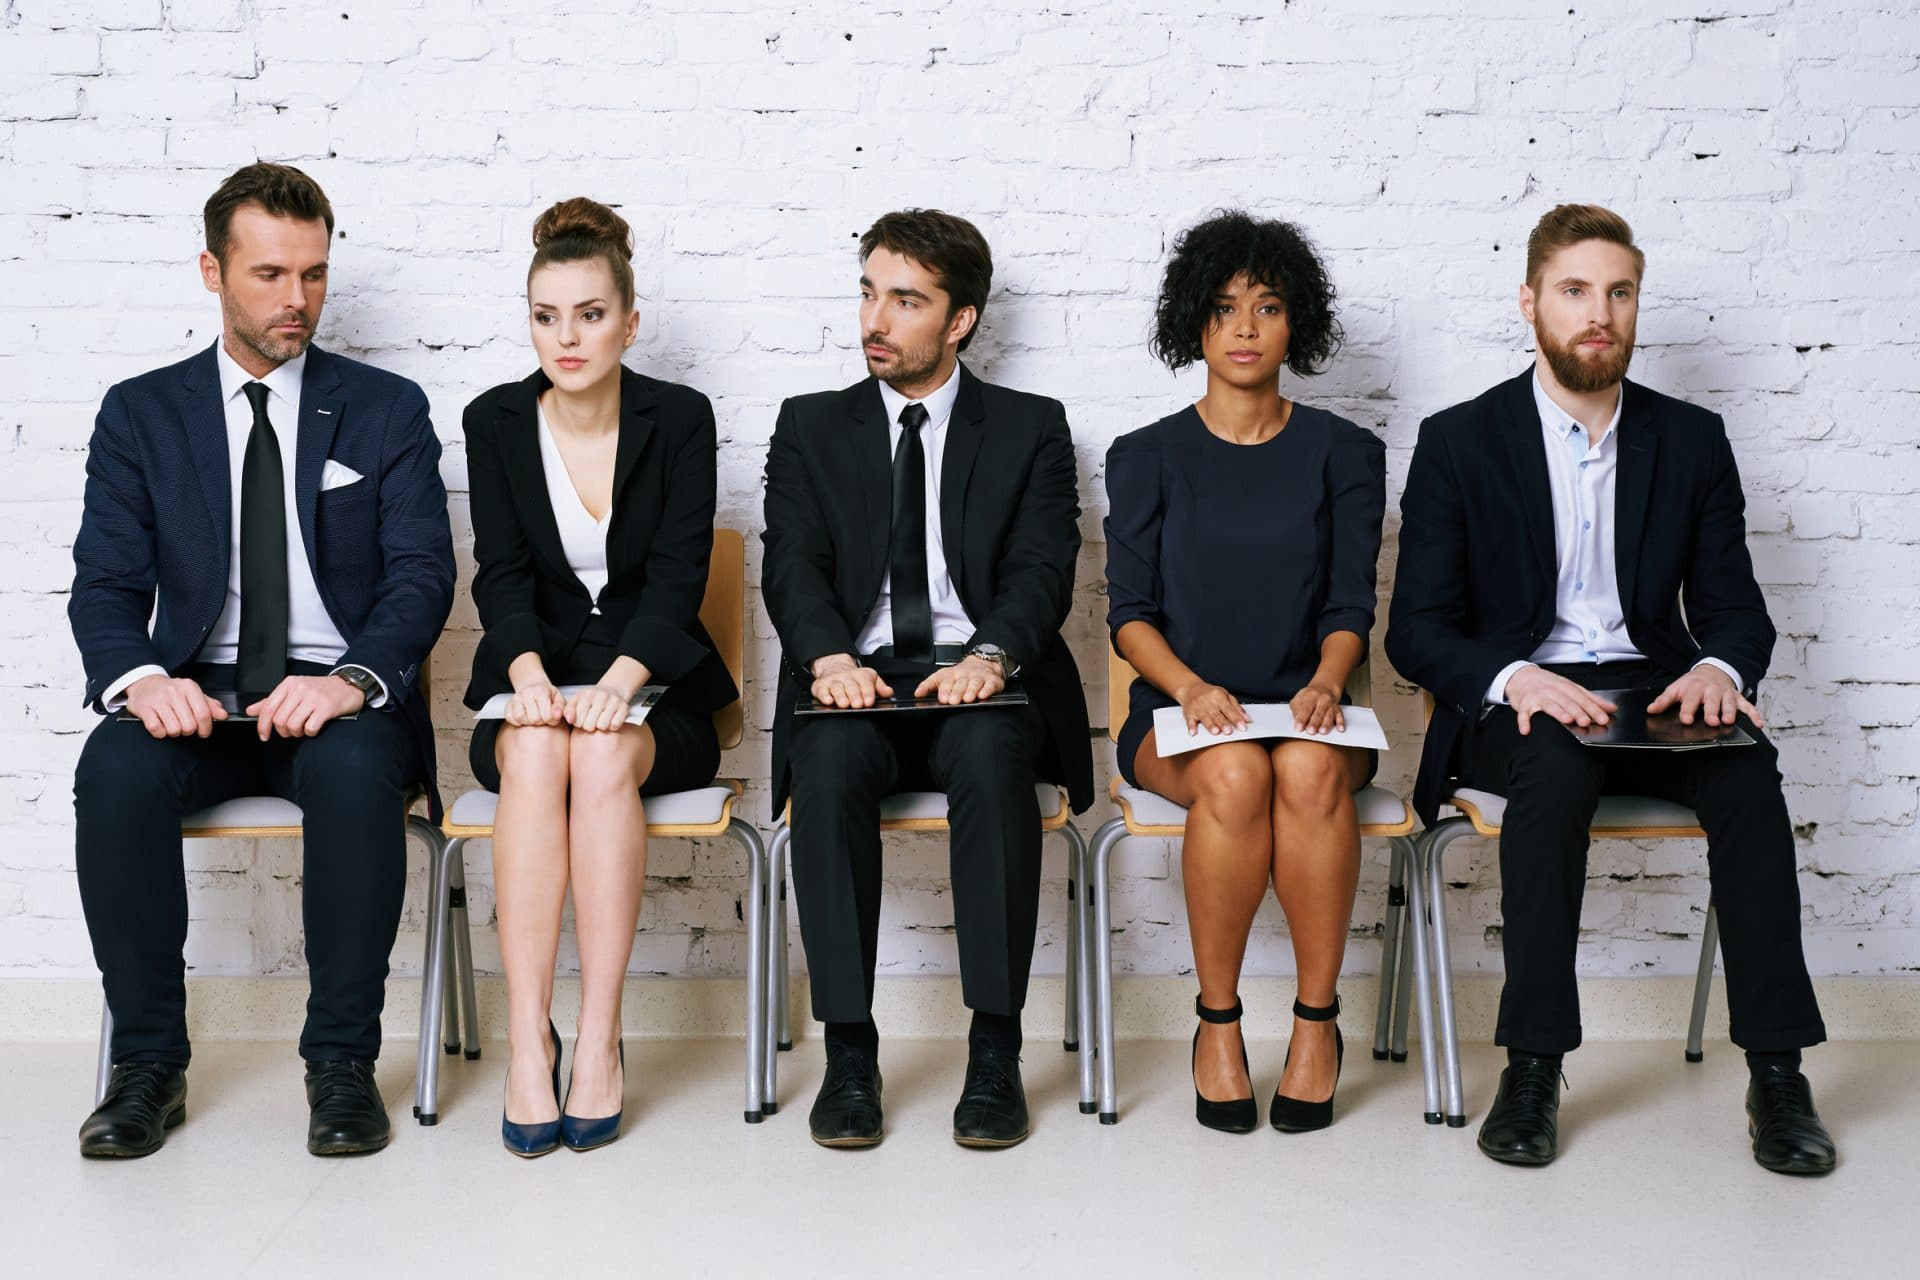 Group of people wait for their executive coaching